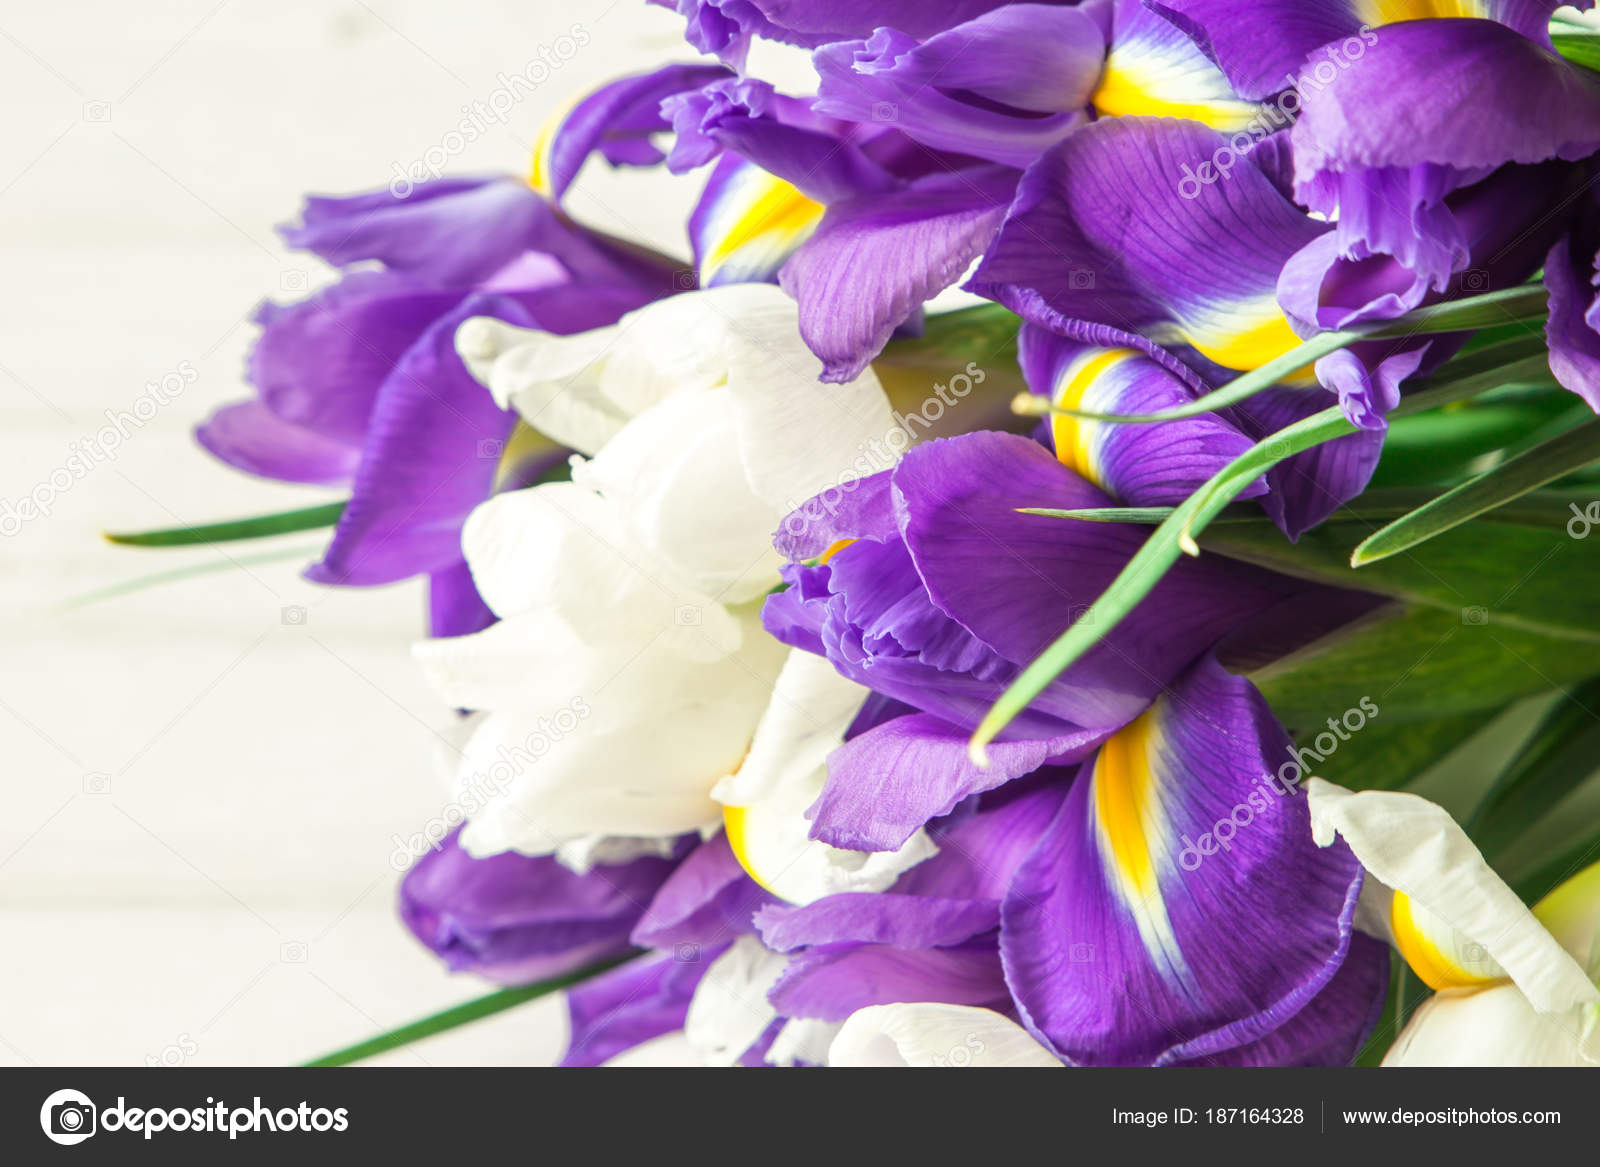 Mazzo Di Fiori Iris.Bouquet Of Iris Flowers On White Wooden Table Stock Photo